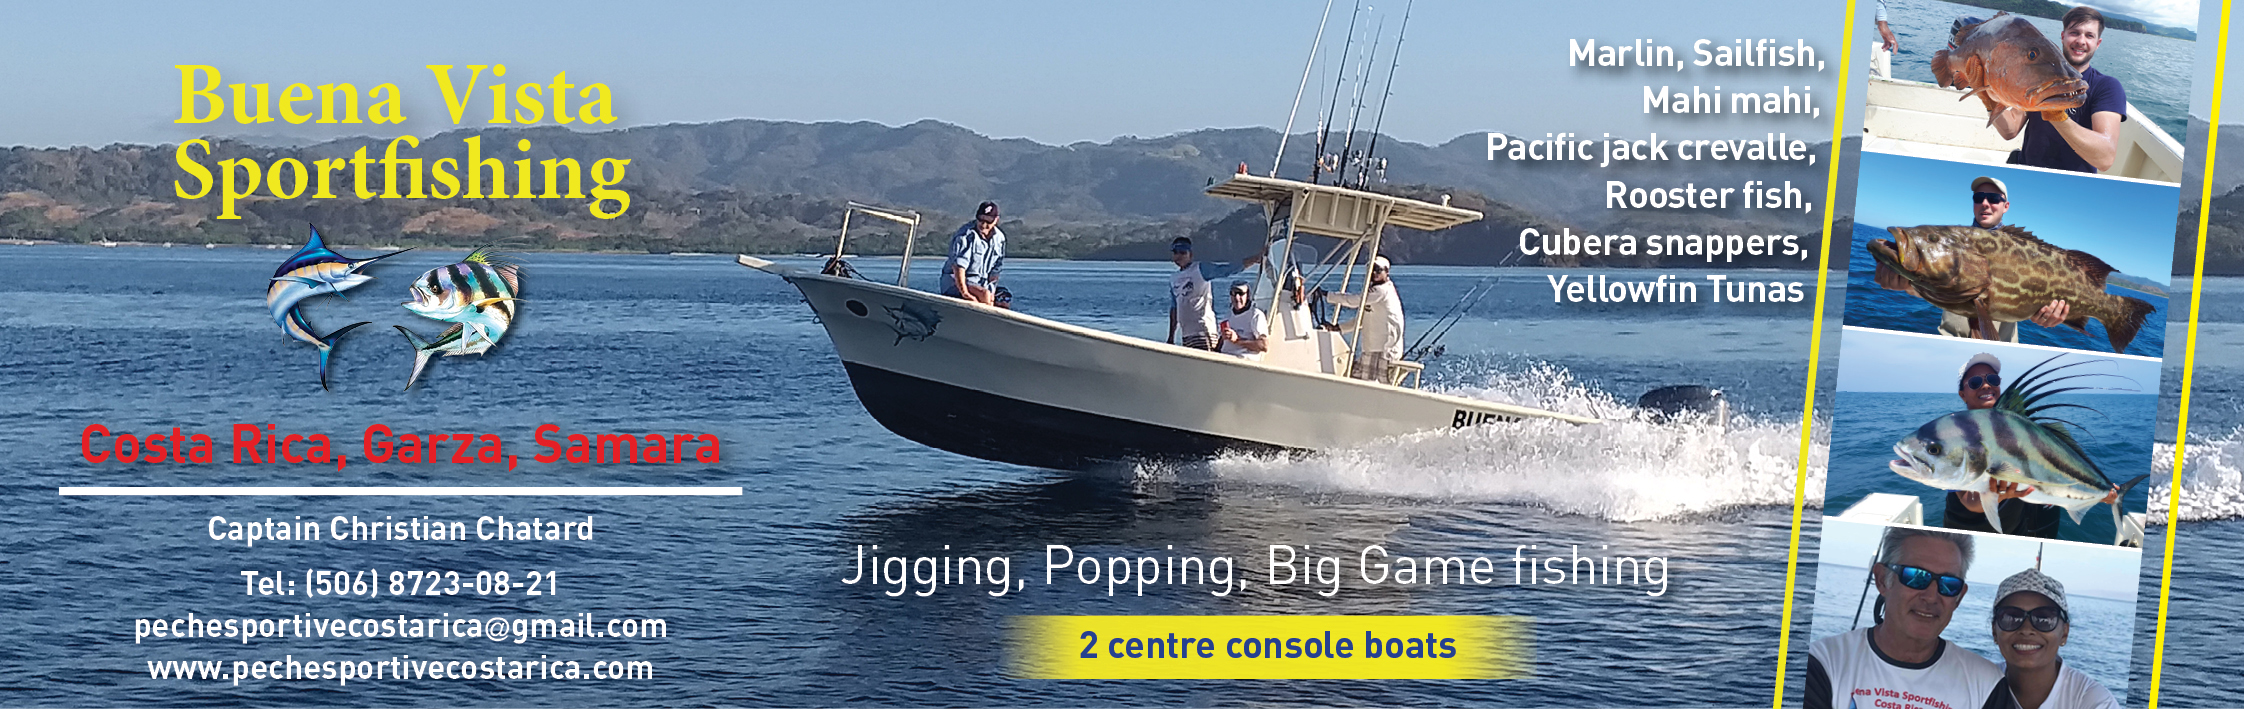 Banner Buena Vista Sport Fishing